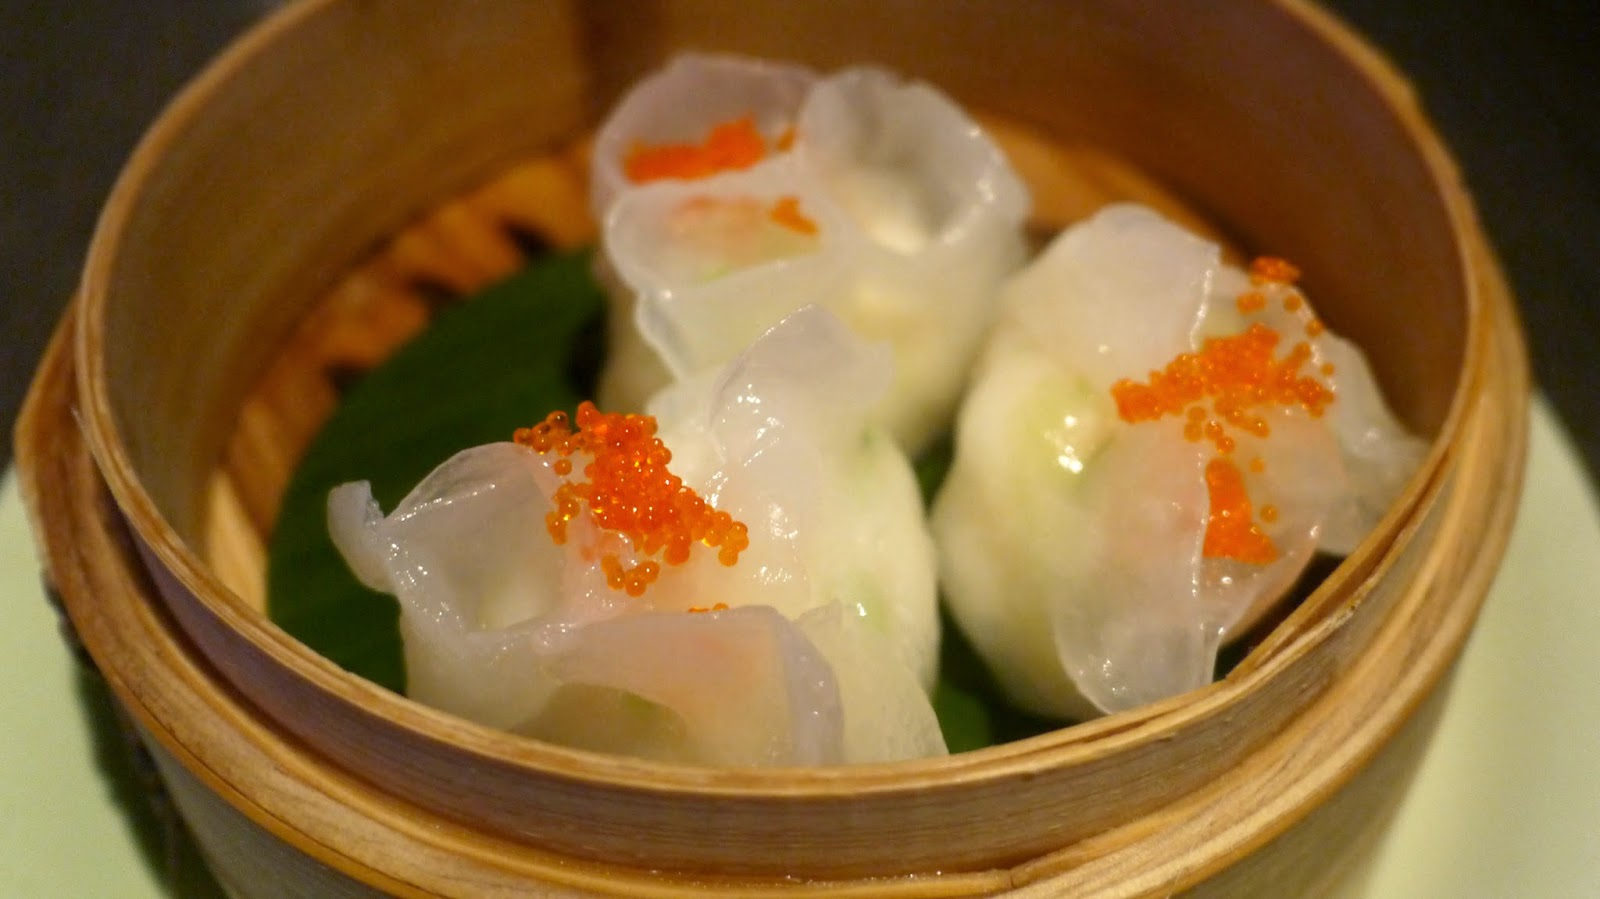 Yauatcha lobster dumpling with tobiko caviar with ginger and shallot